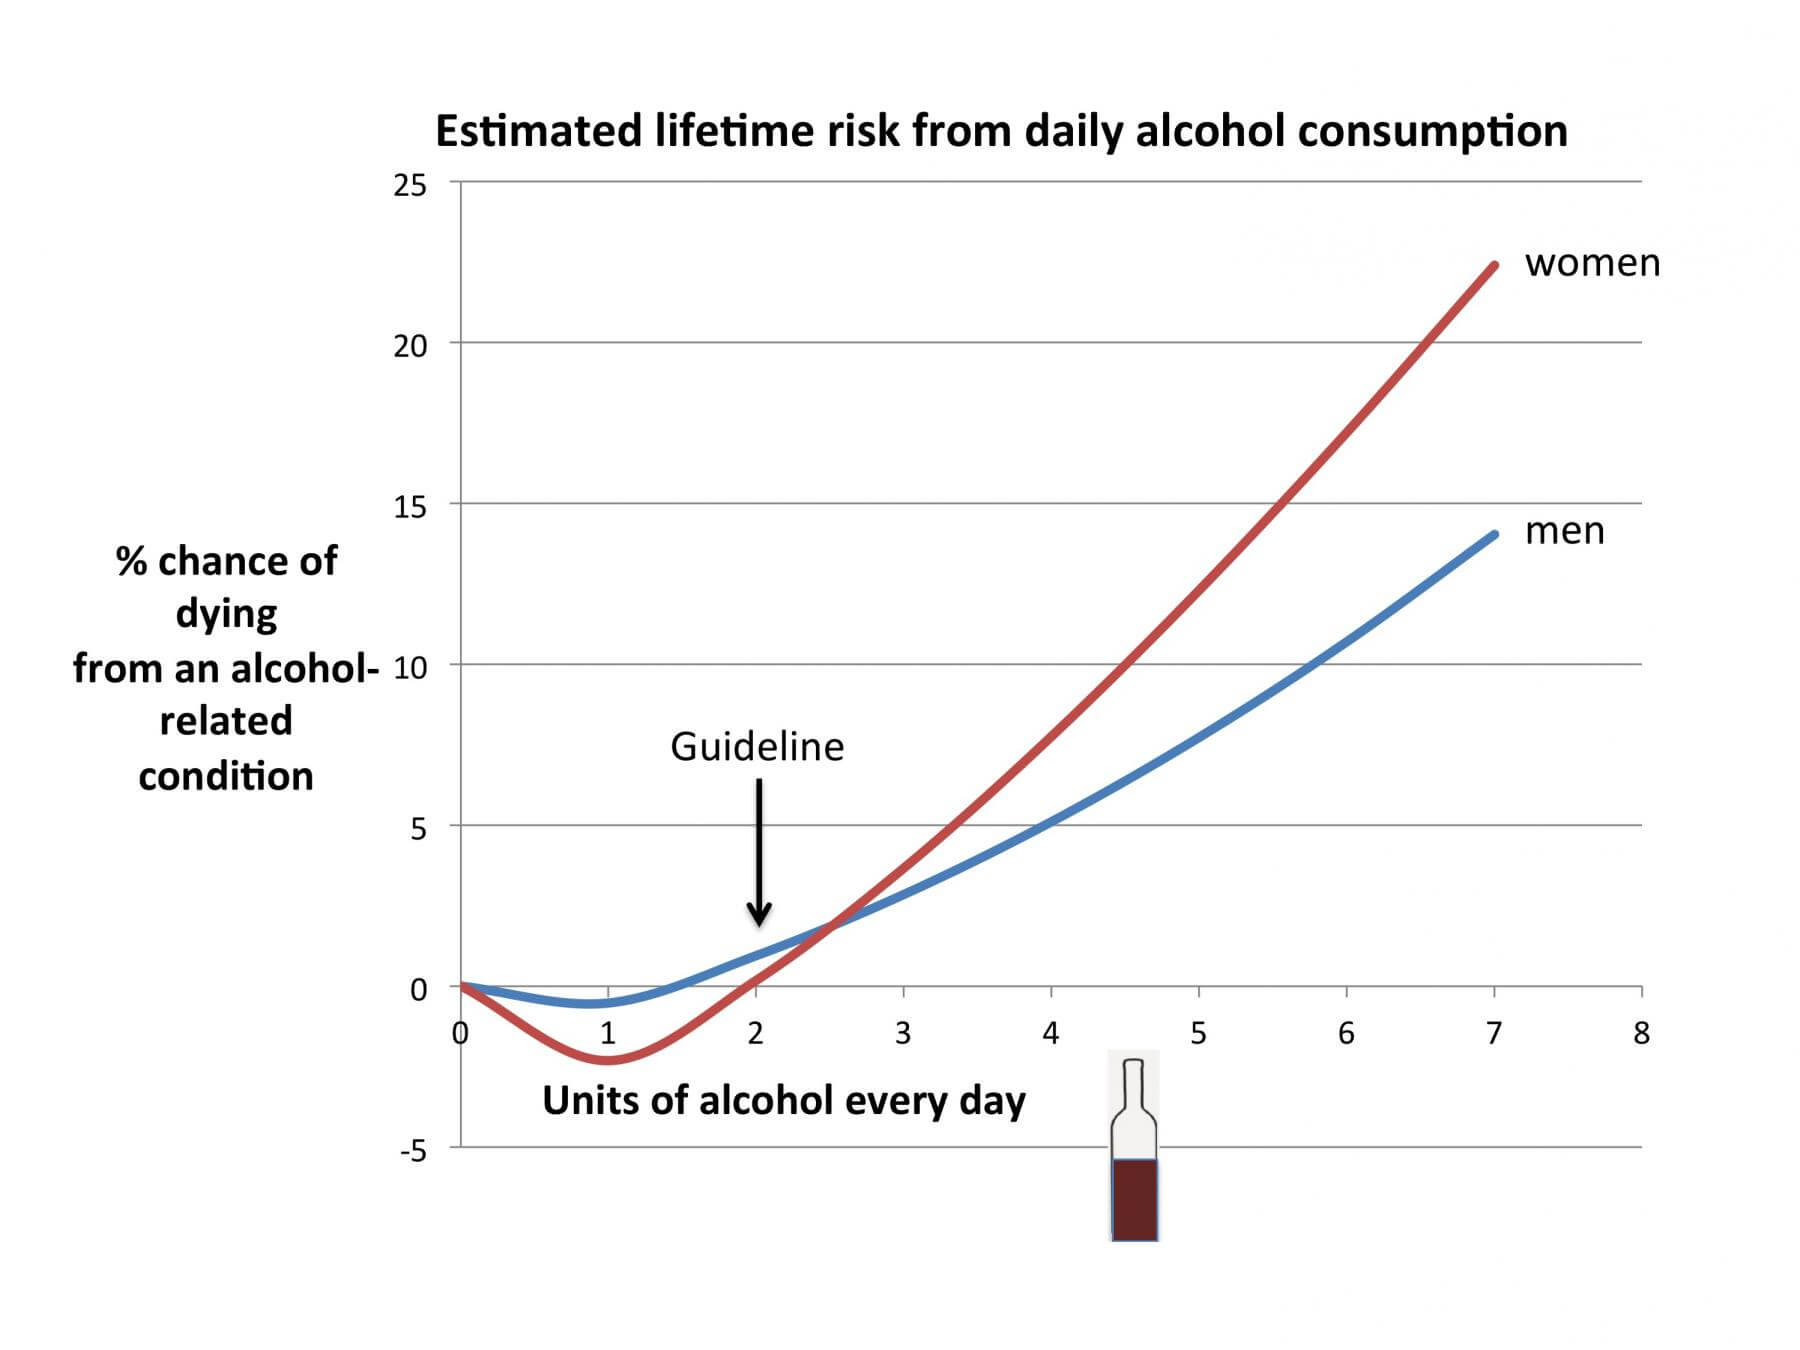 Estimated daily risk from daily alcochol consumption